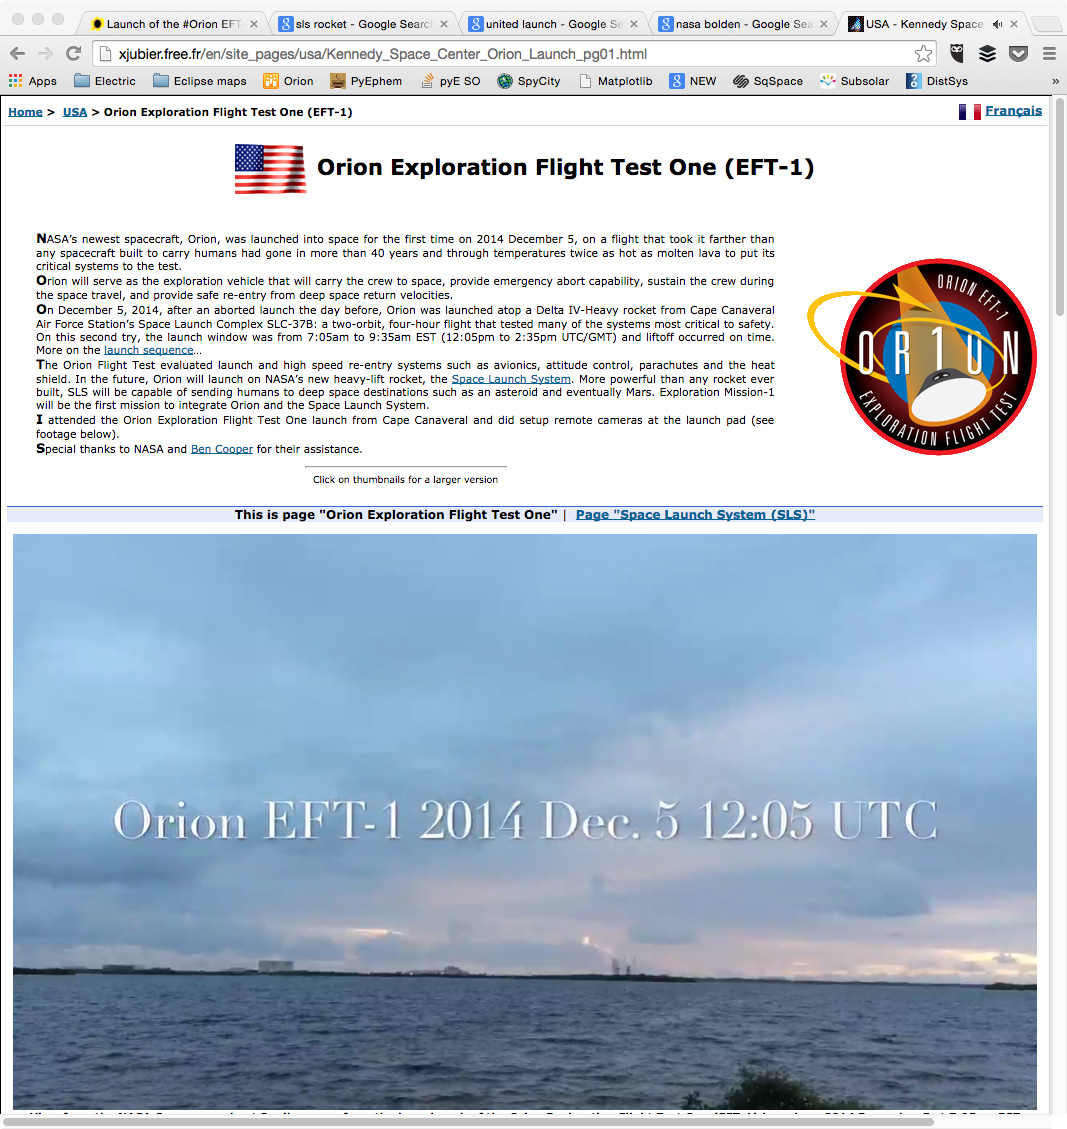 My friend xavier jubier had media credentials for the orion launch and captured great close-up photographs of the launch. click on the image to see his web page.